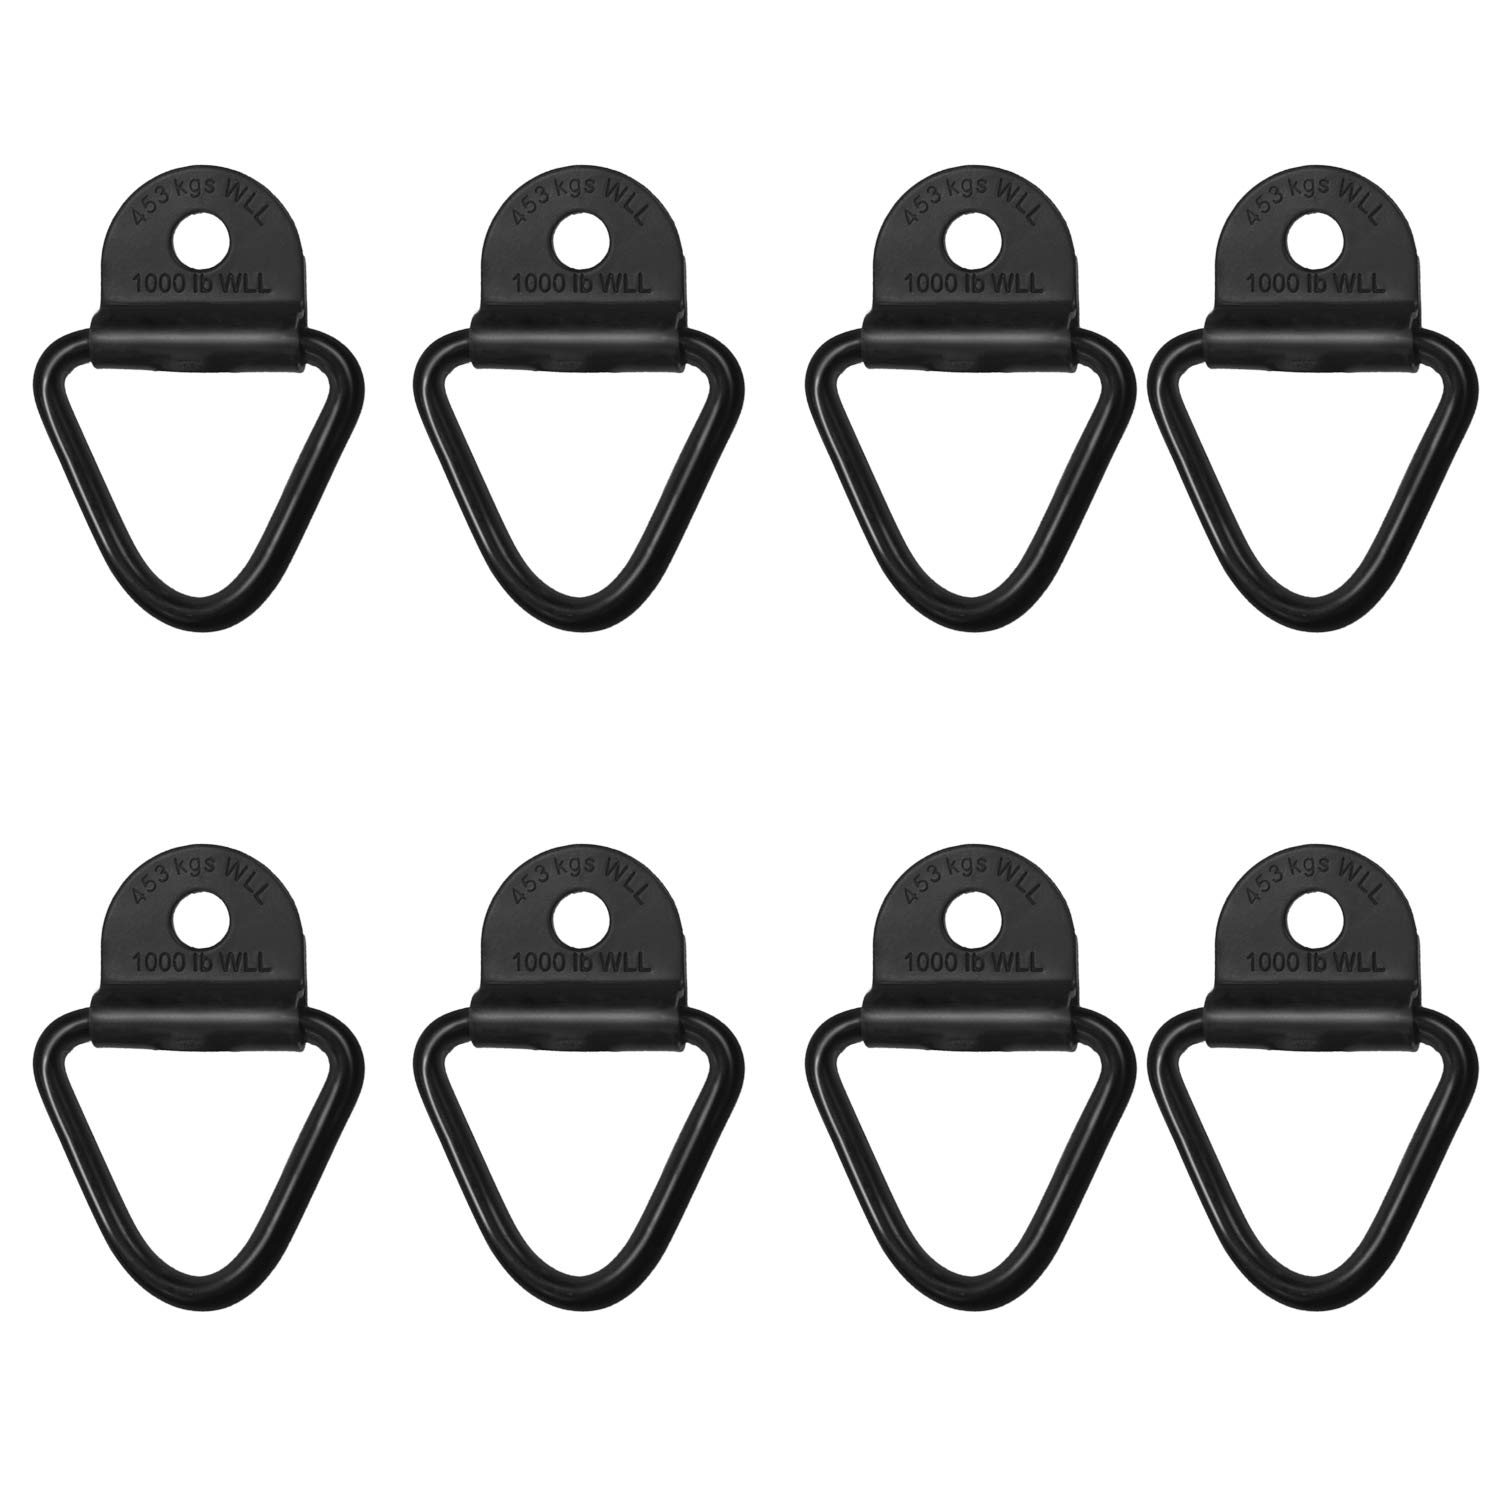 Sporthfish Cargo Tie-Down Anchors,4-Pack Black Steel V-Ring Bolton Trailer Cargo Tie Down,for Trailers,Trucks and Warehouses Replacement for D-Ring Plastic Flush Mount Pan Fitting Tie Down